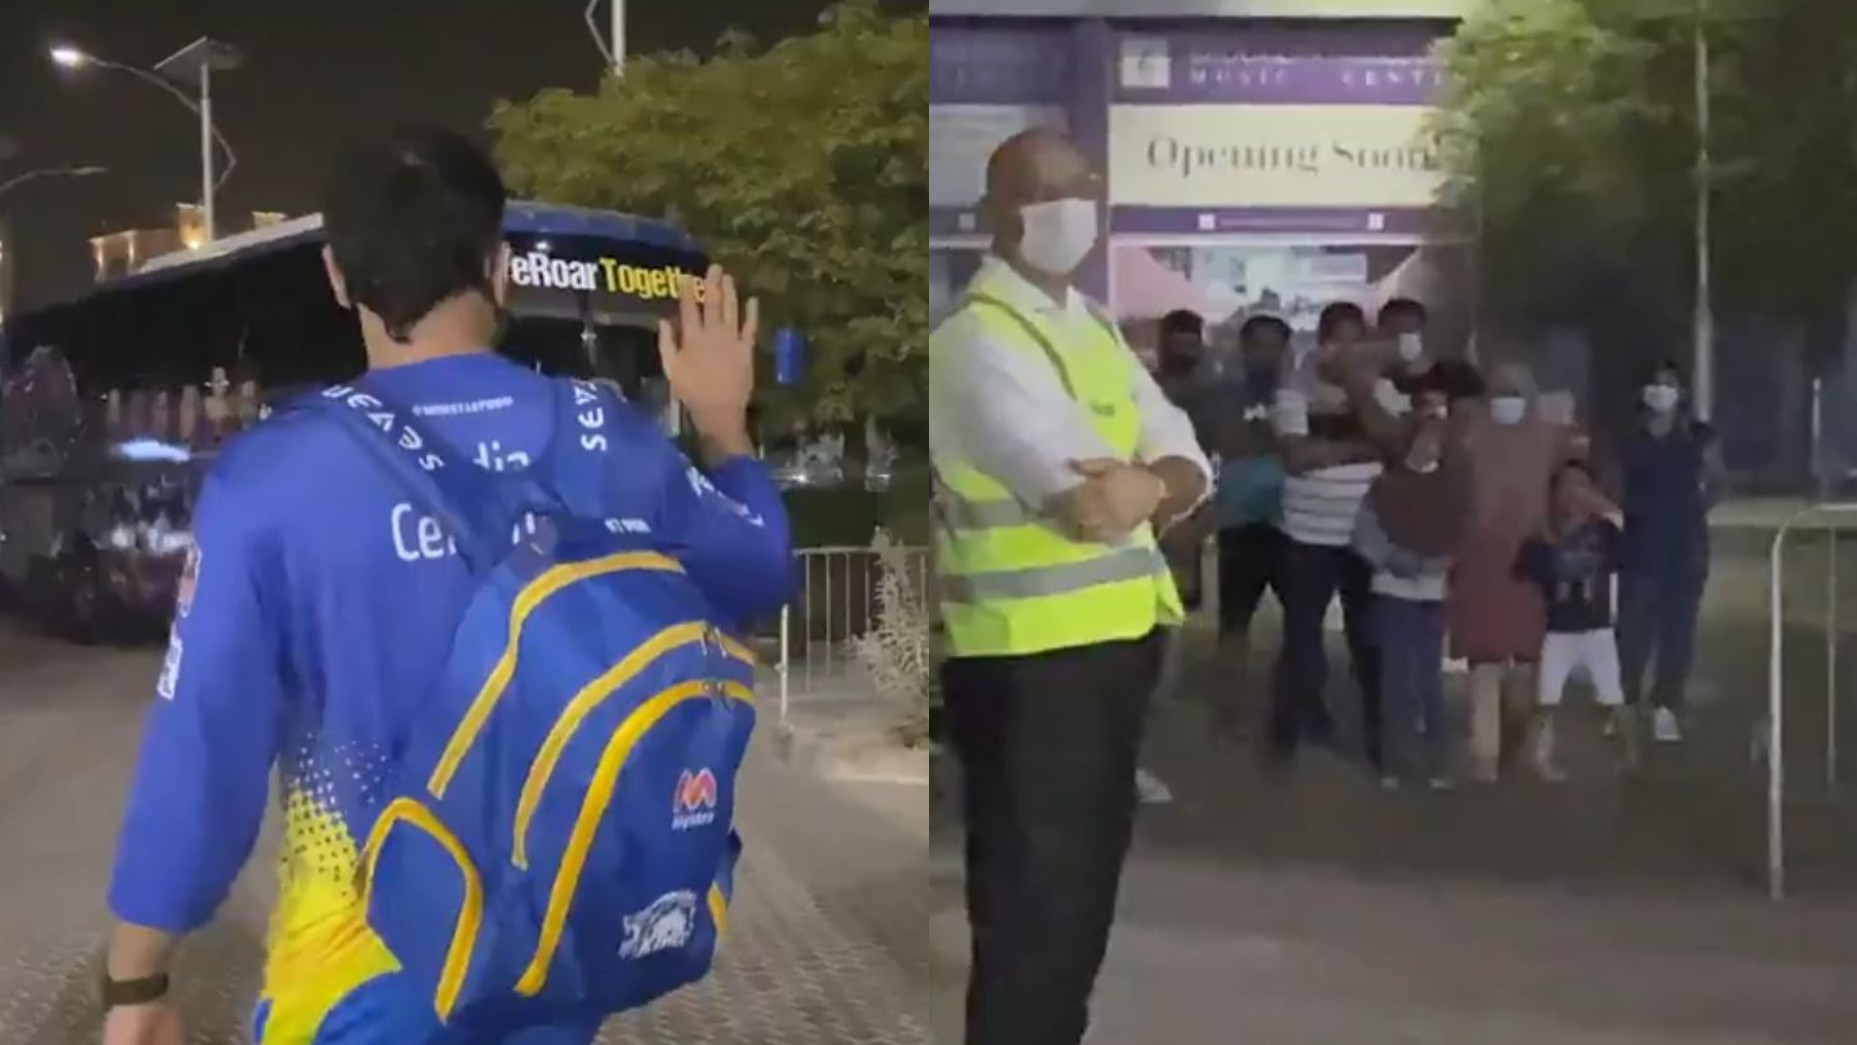 IPL 2021: WATCH- MS Dhoni waves to his fans in Dubai as they cheer for him